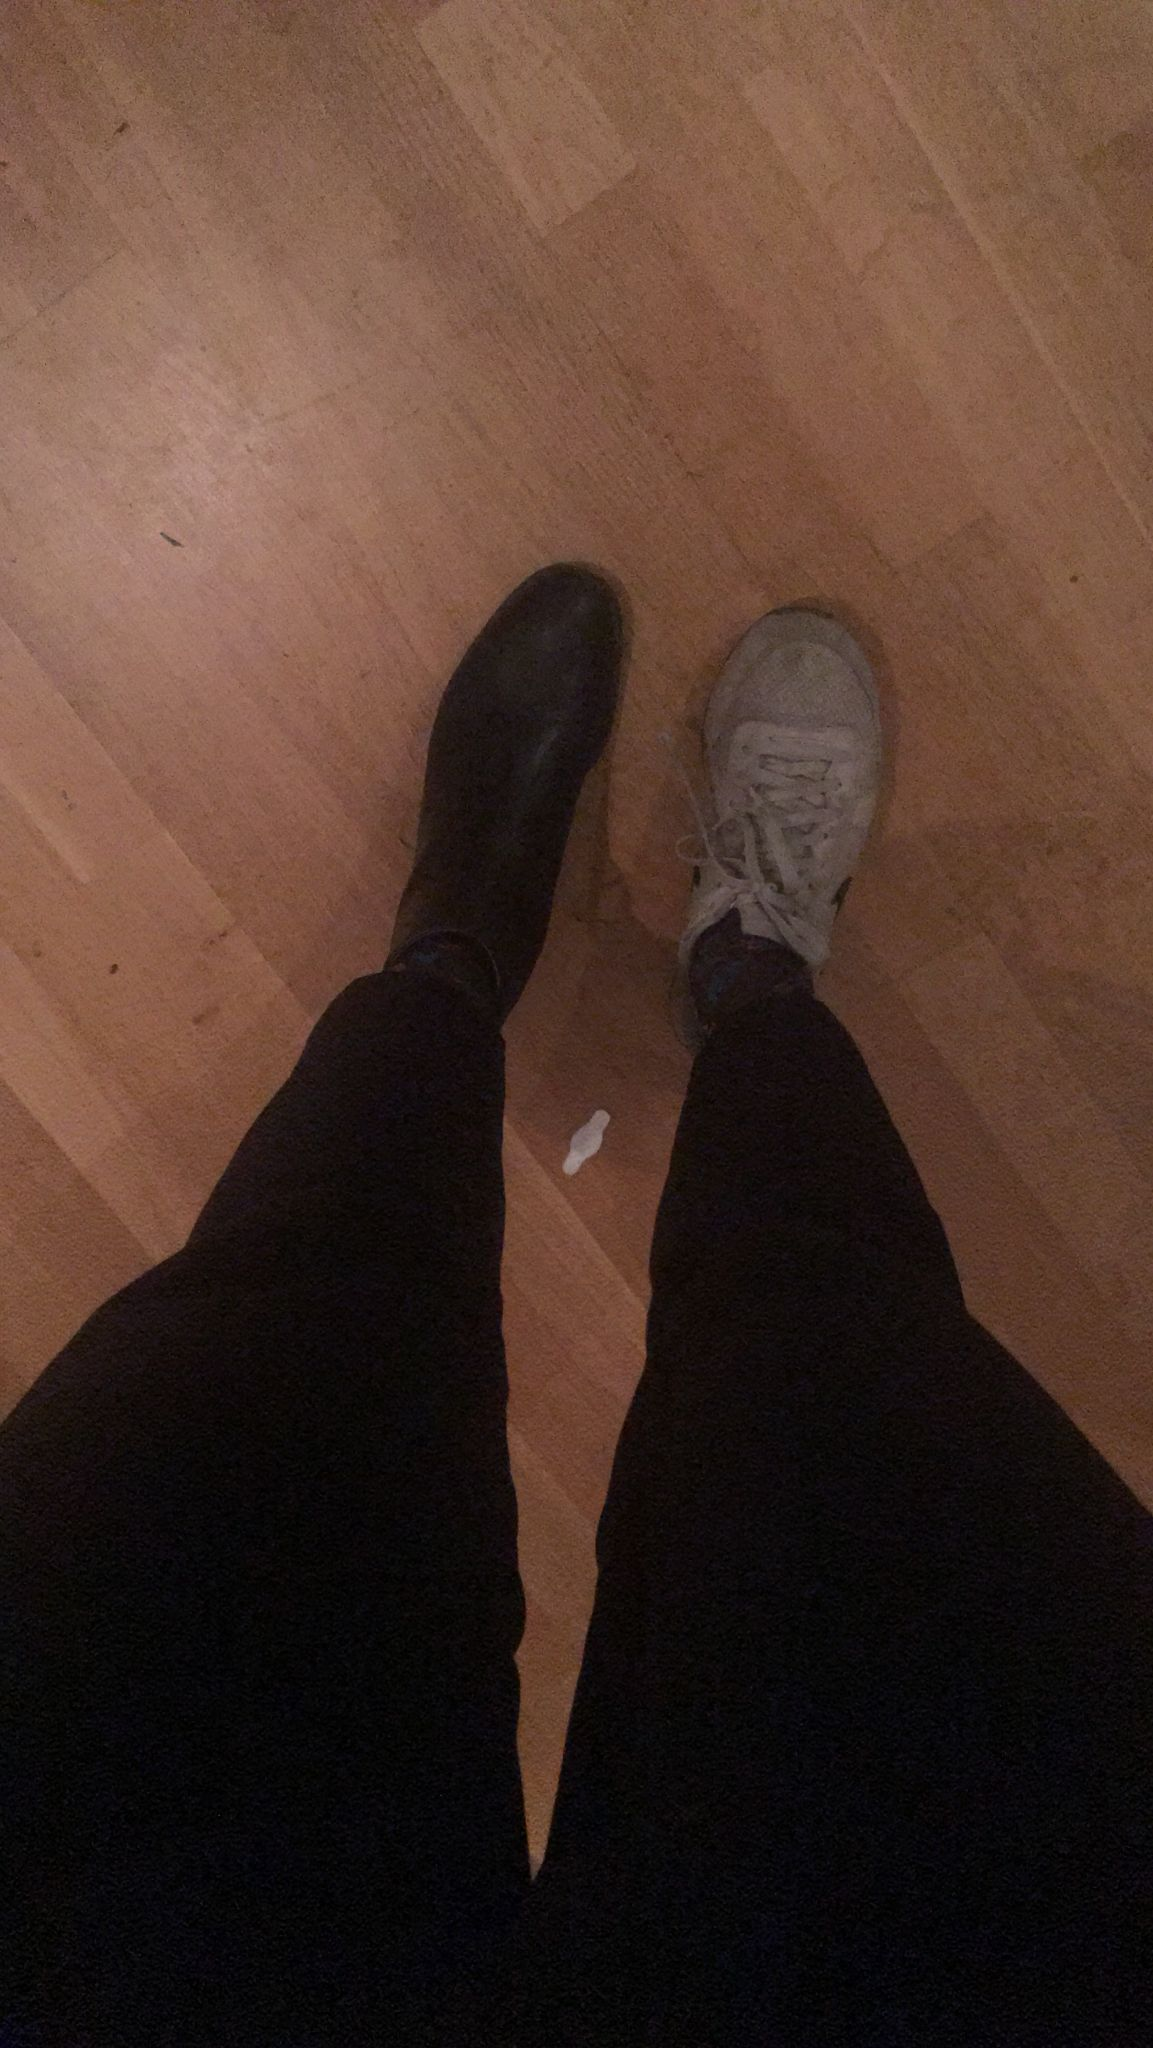 A photo of a person's legs with black pants on a wooden indoor floor.  On the left foot is a black boot, on the right foot is a white sneaker.